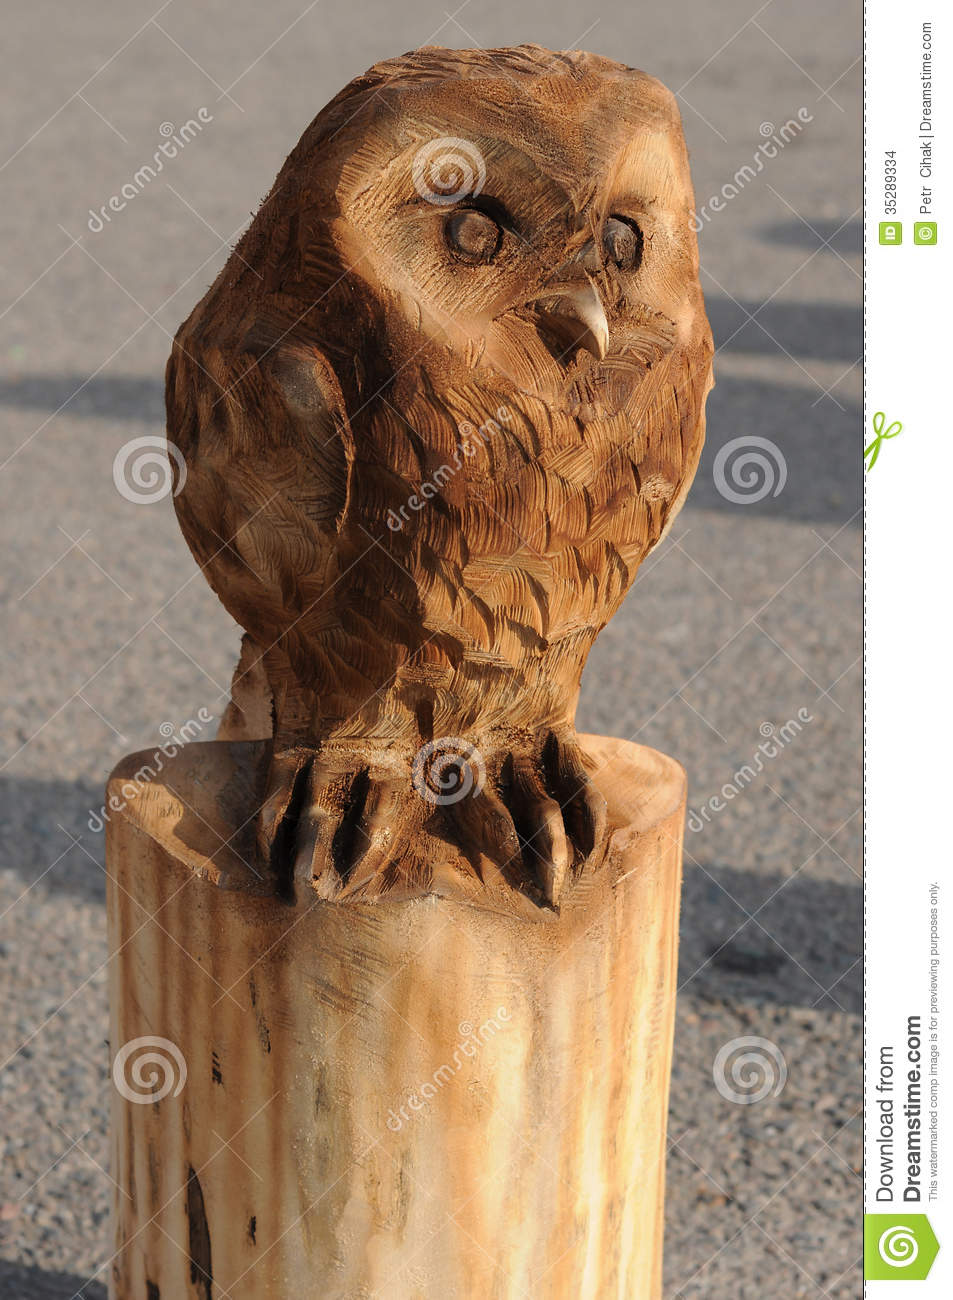 Owl stock images image